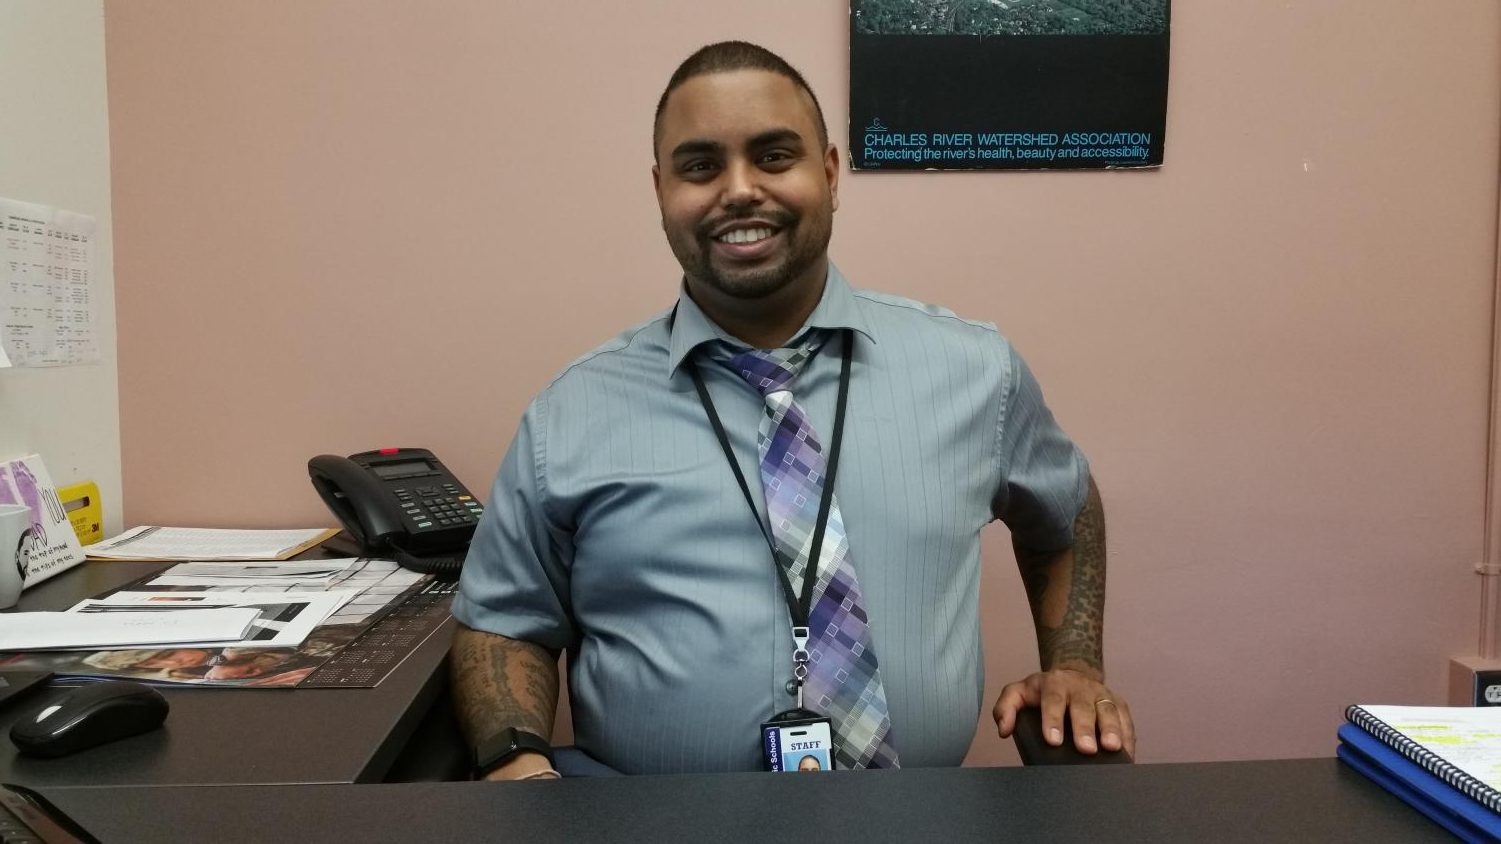 All freshmen's guidance counselors are now either Mr. Roldan or Mr. Hikes (pictured).